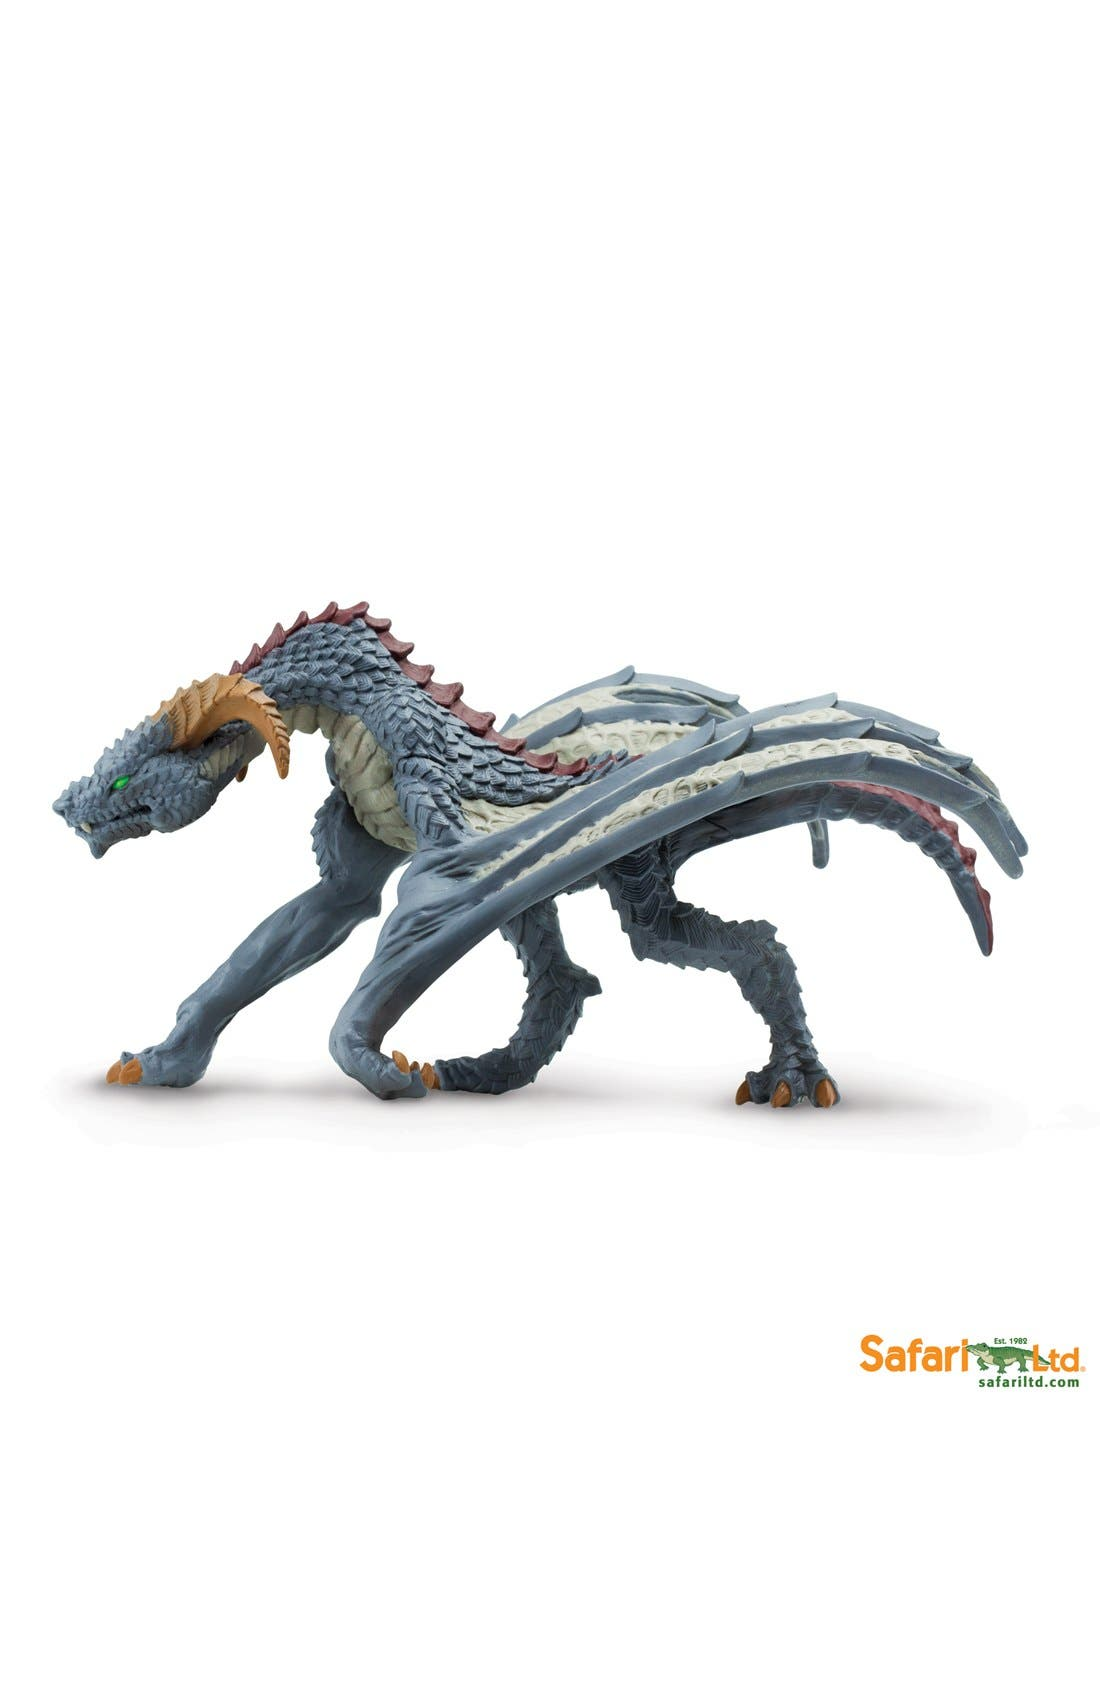 Alternate Image 1 Selected - Safari Ltd. Cave Dragon Figurine